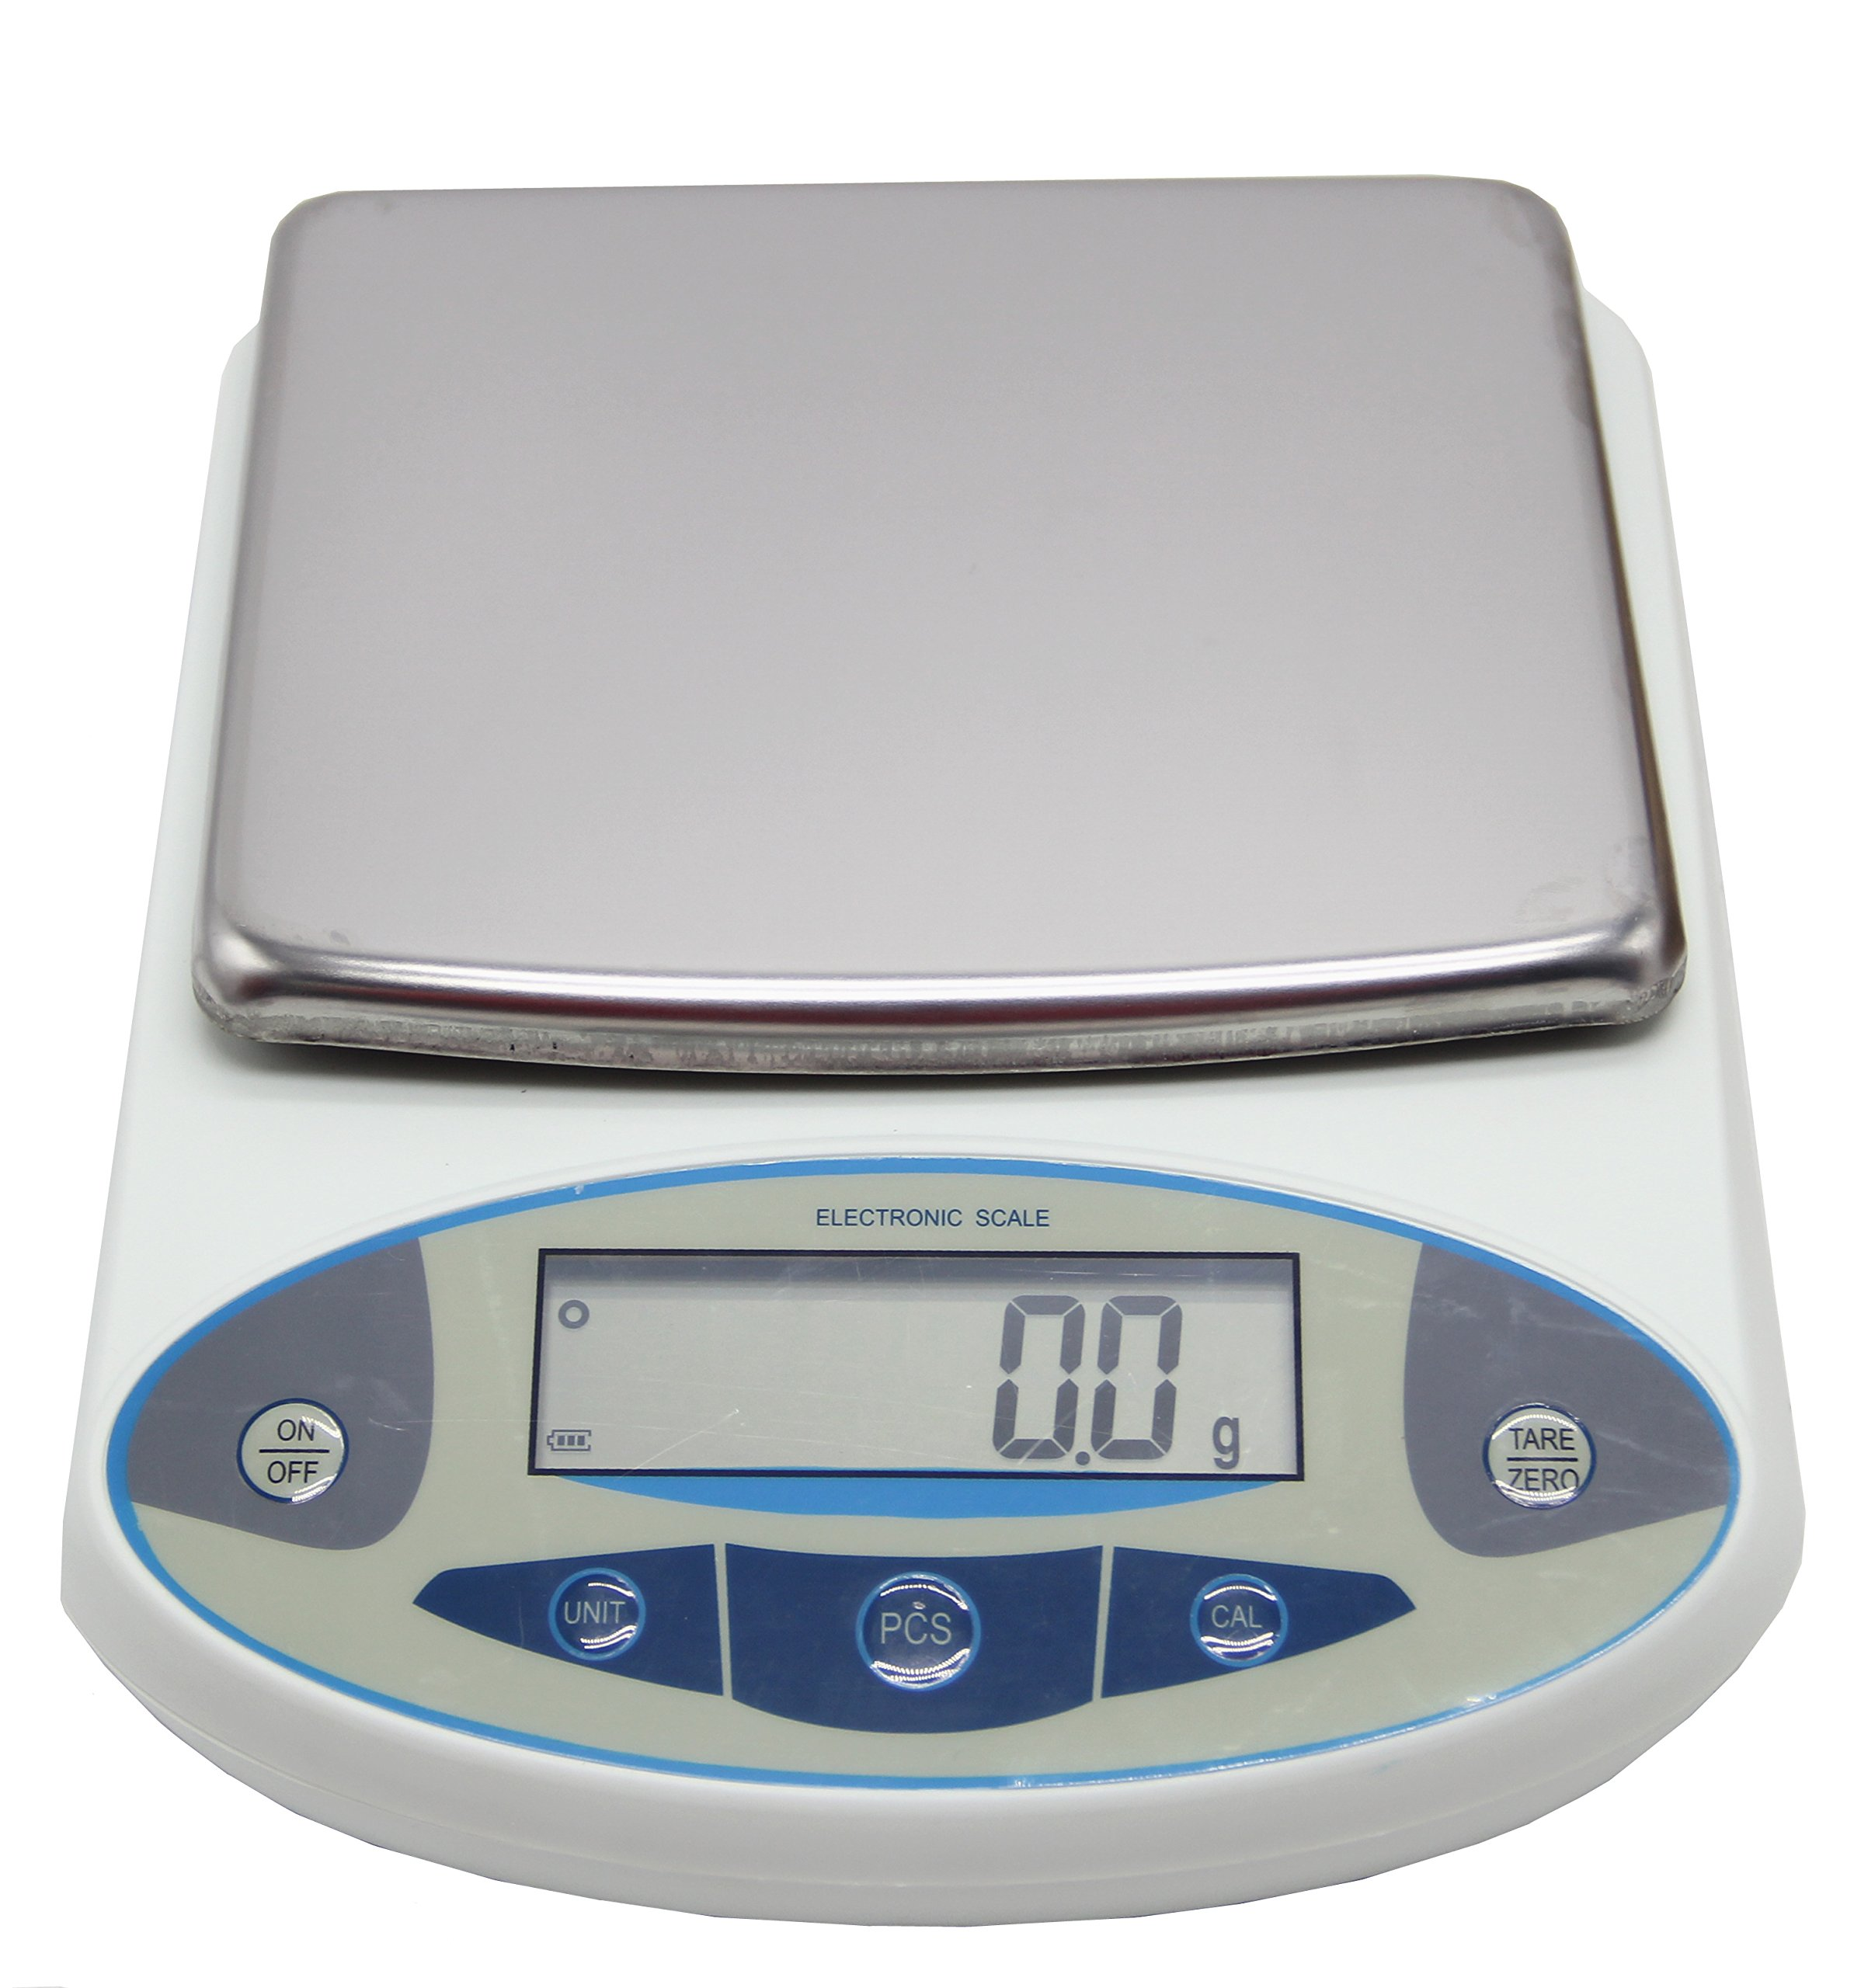 BAOSHISHAN 20kg/0.1g Analytical Electronic Balance Lab Digital Balance Scale High Precision Balances Jewelry Scales Kitchen Precision Weighing Pan Size=180x160mm (0.1g, 20kg)